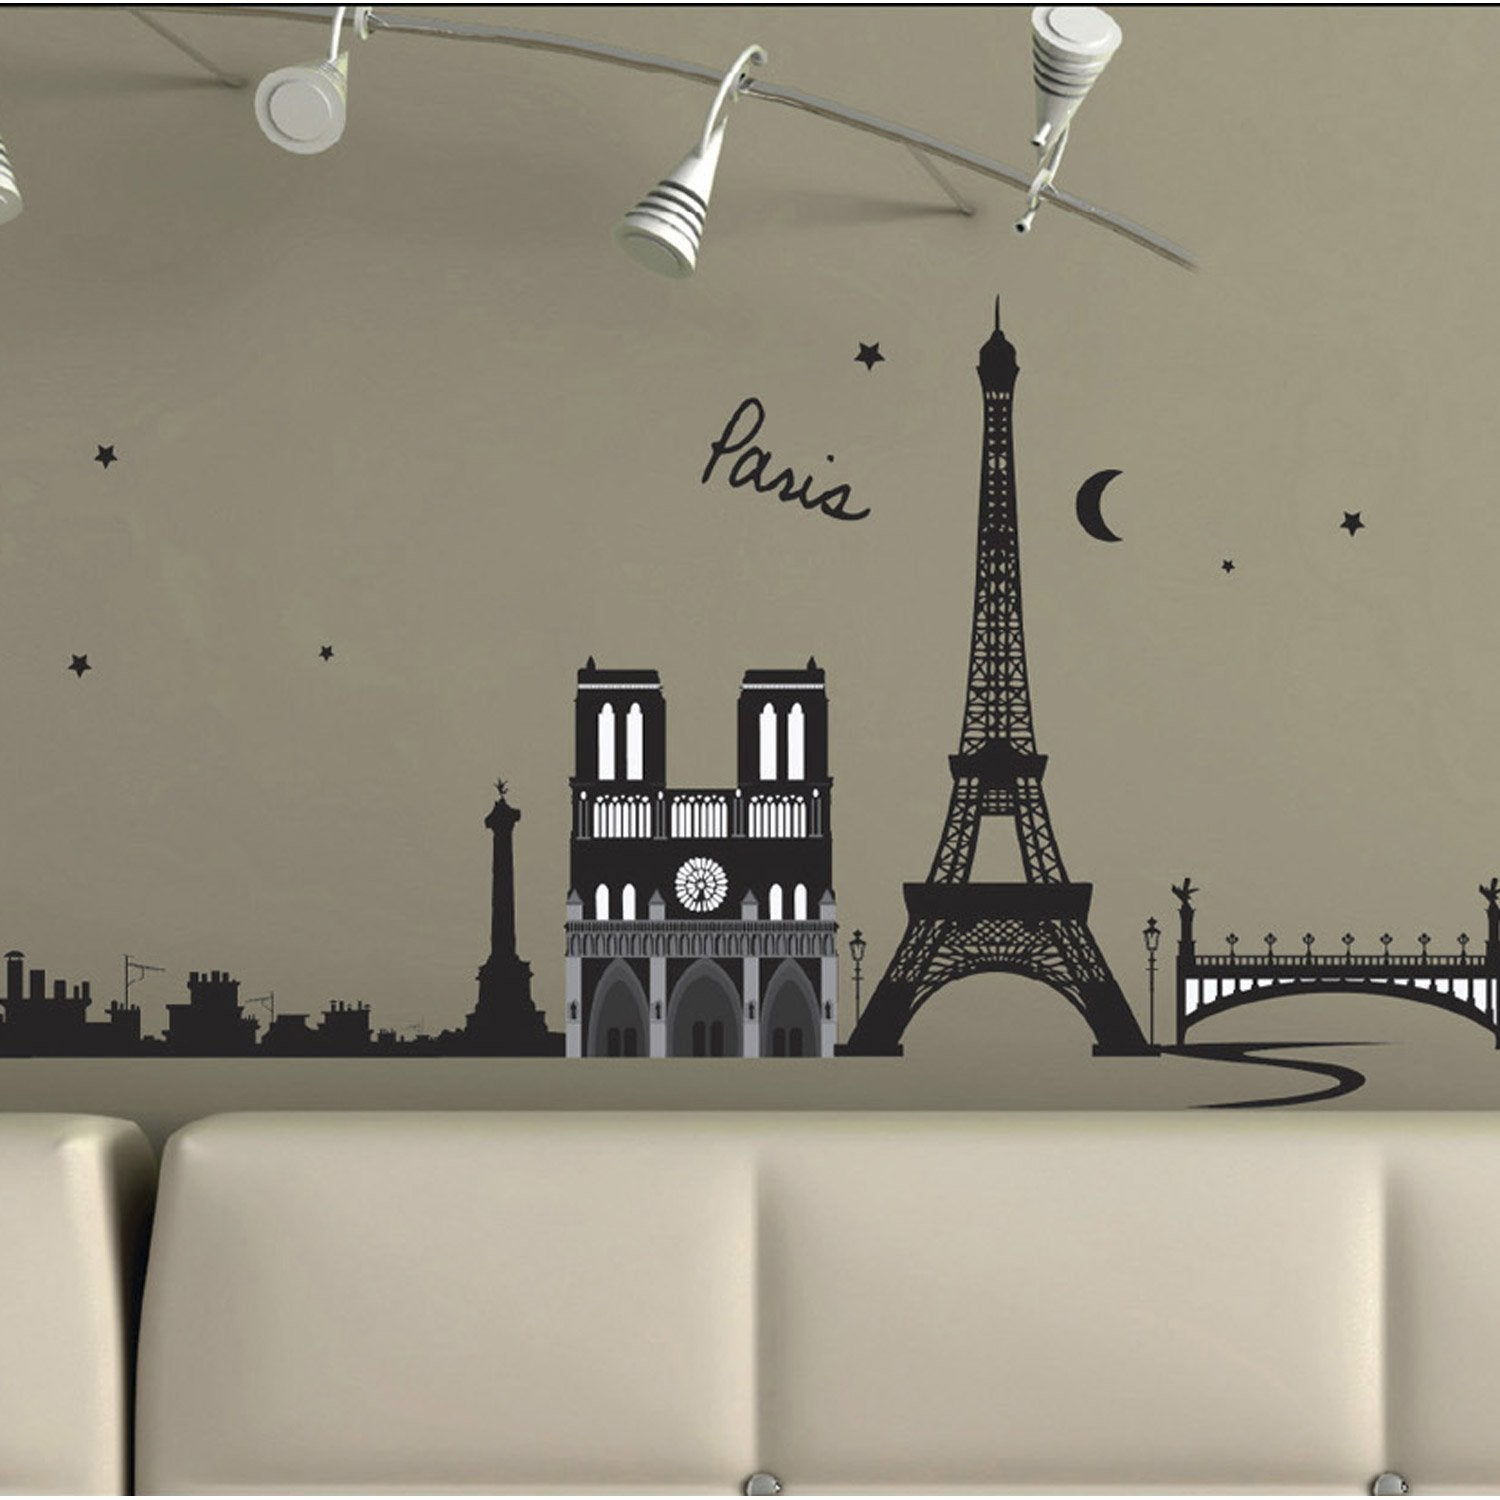 Sticker paris france 50 cm x 70 cm leroy merlin - Stickers de porte leroy merlin ...